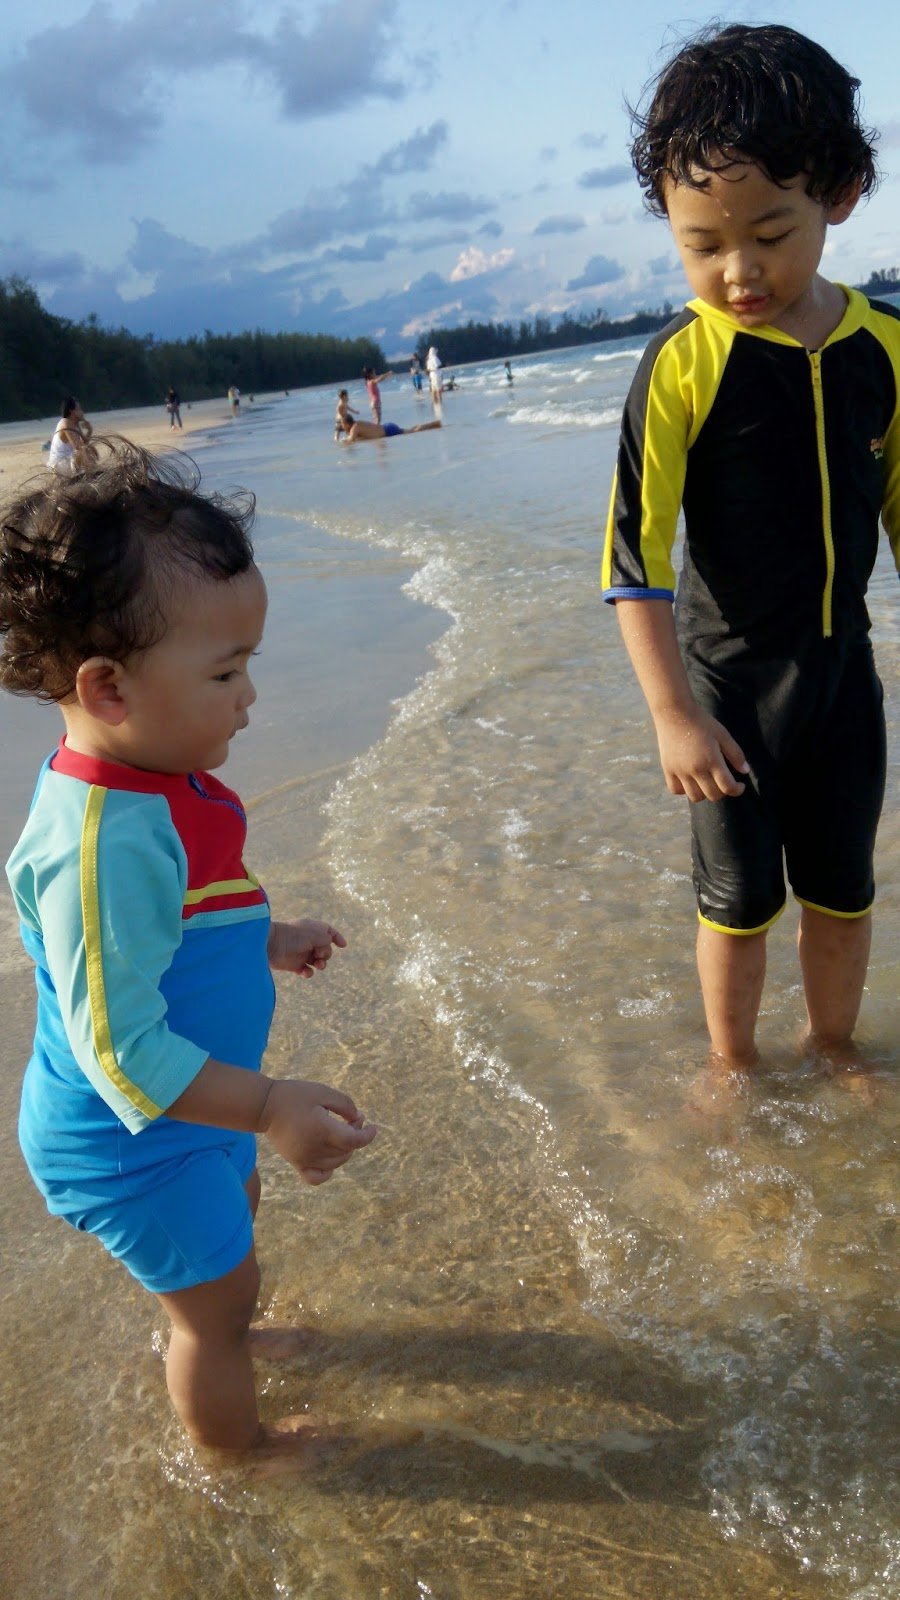 holiday in terengganu Kuala terengganu packages - best offers on kuala terengganu vacation tours & travel packages at makemytrip click to book customized kuala terengganu packages & get exciting deals for kuala terengganu holiday packages.